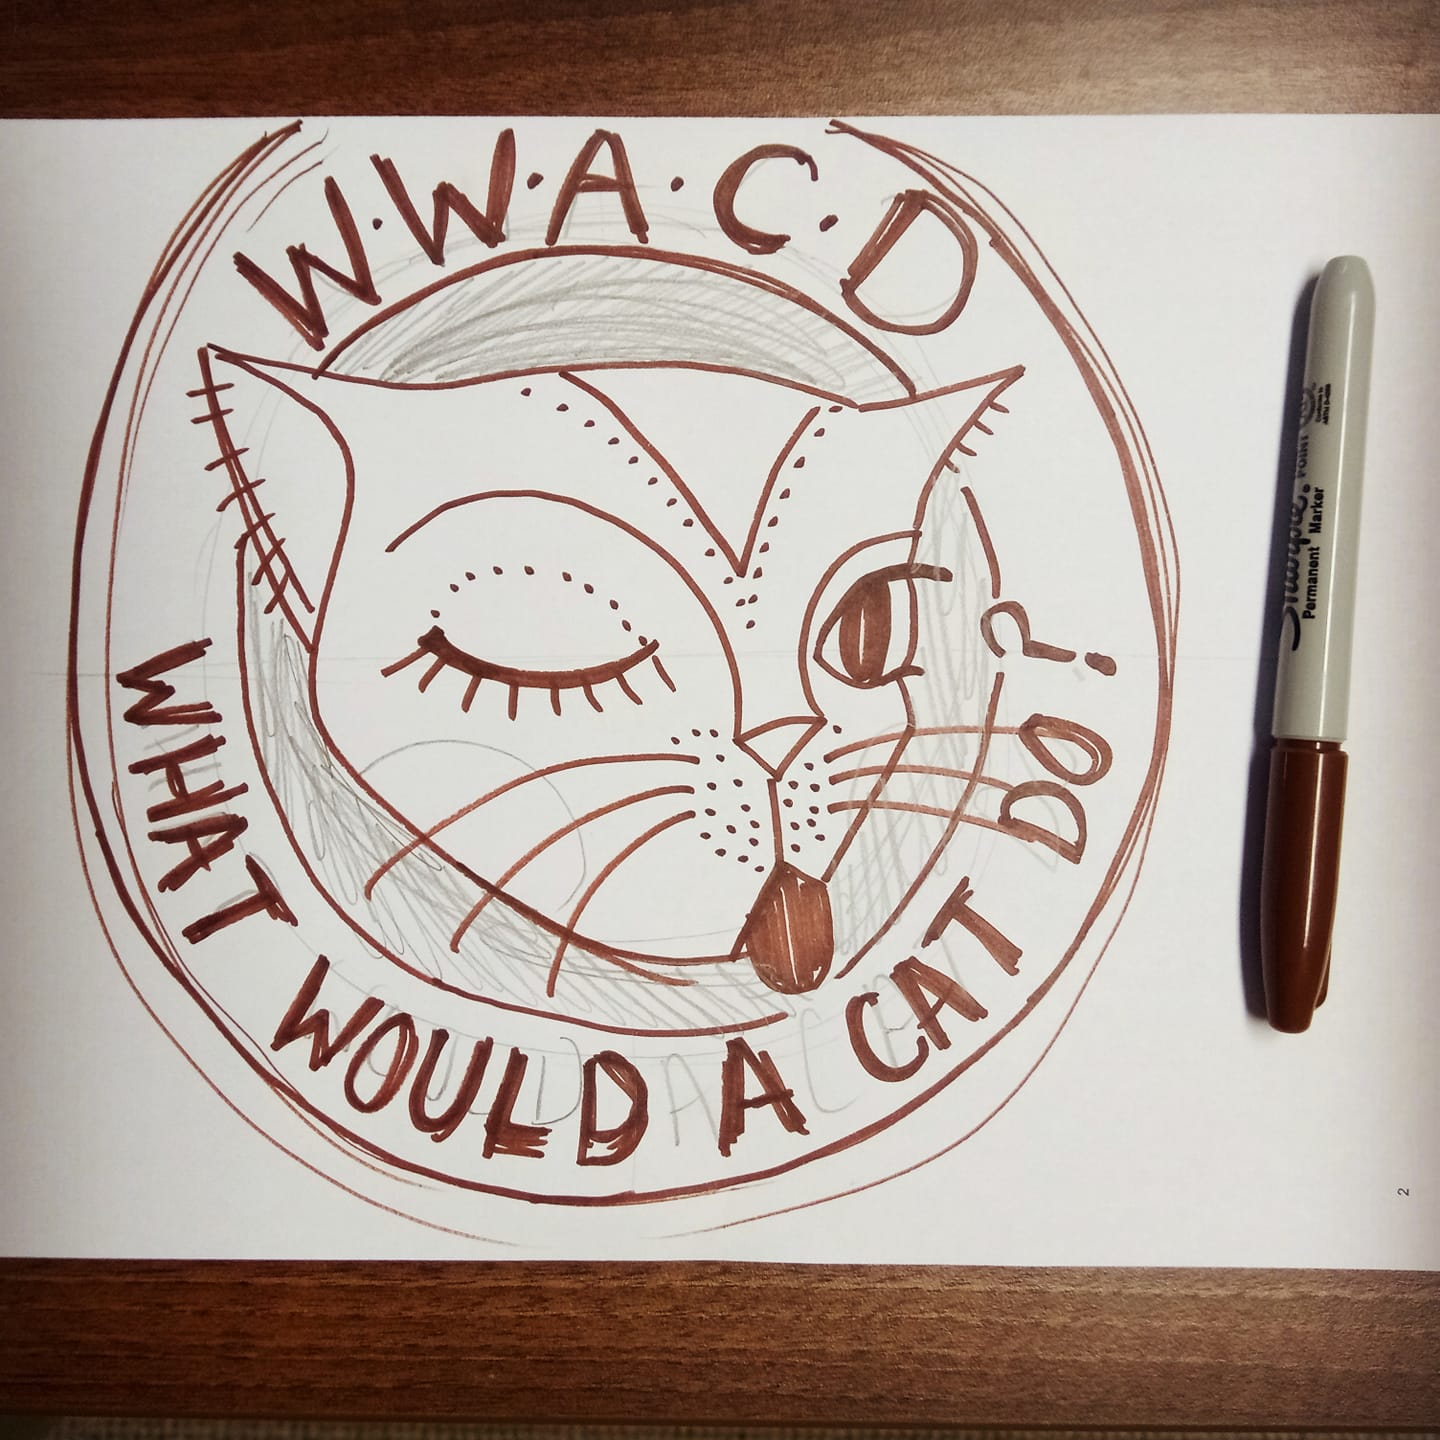 what would a cat do sketch